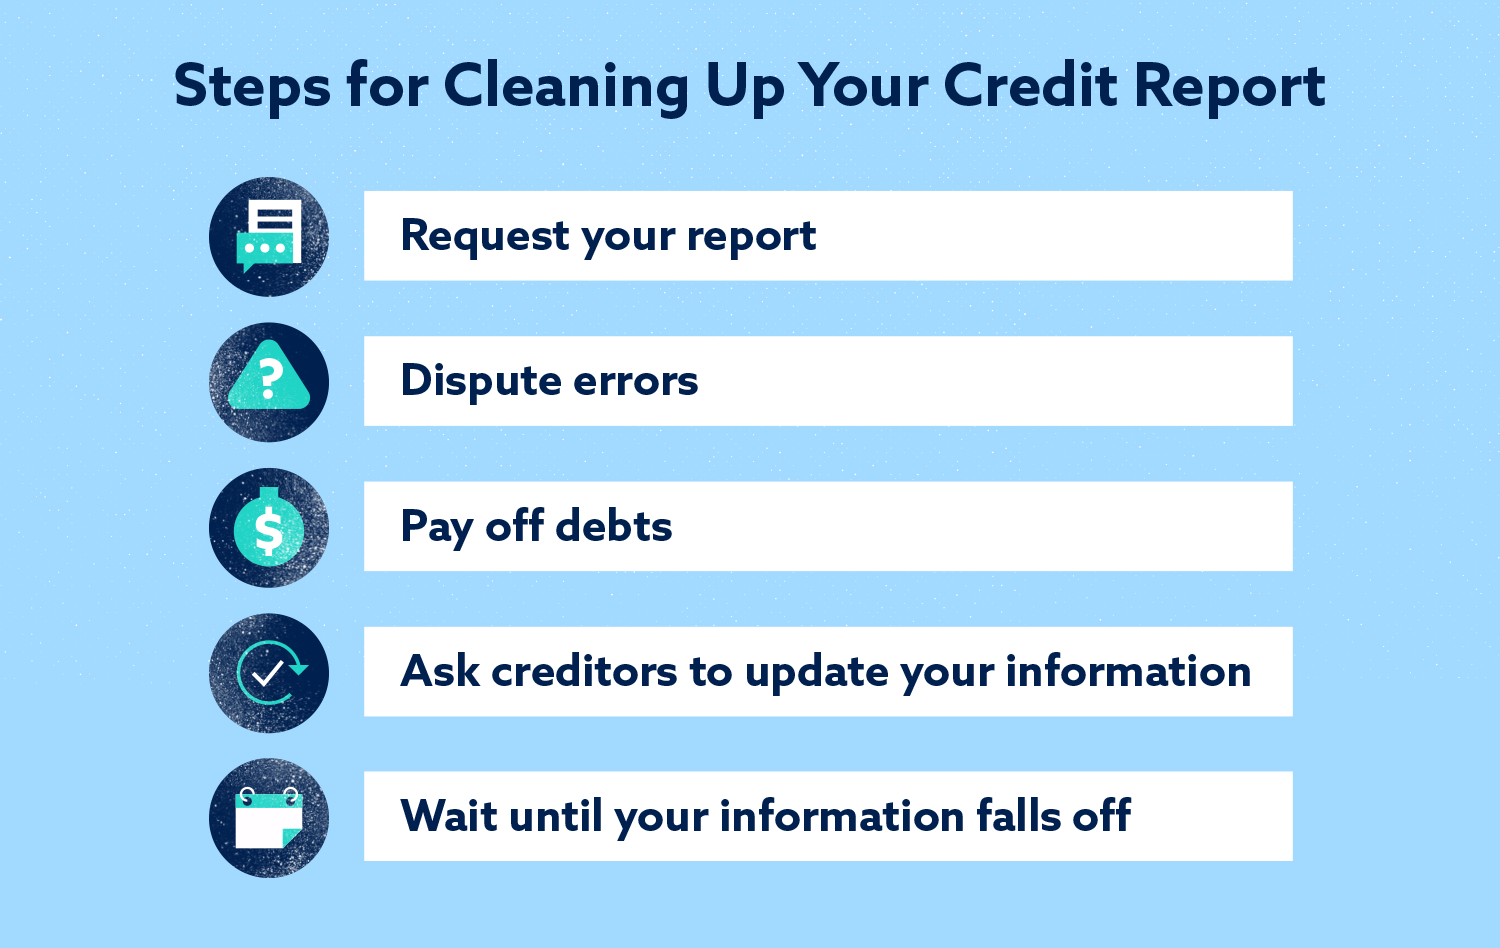 Steps for Cleaning Up Your Credit Report Image